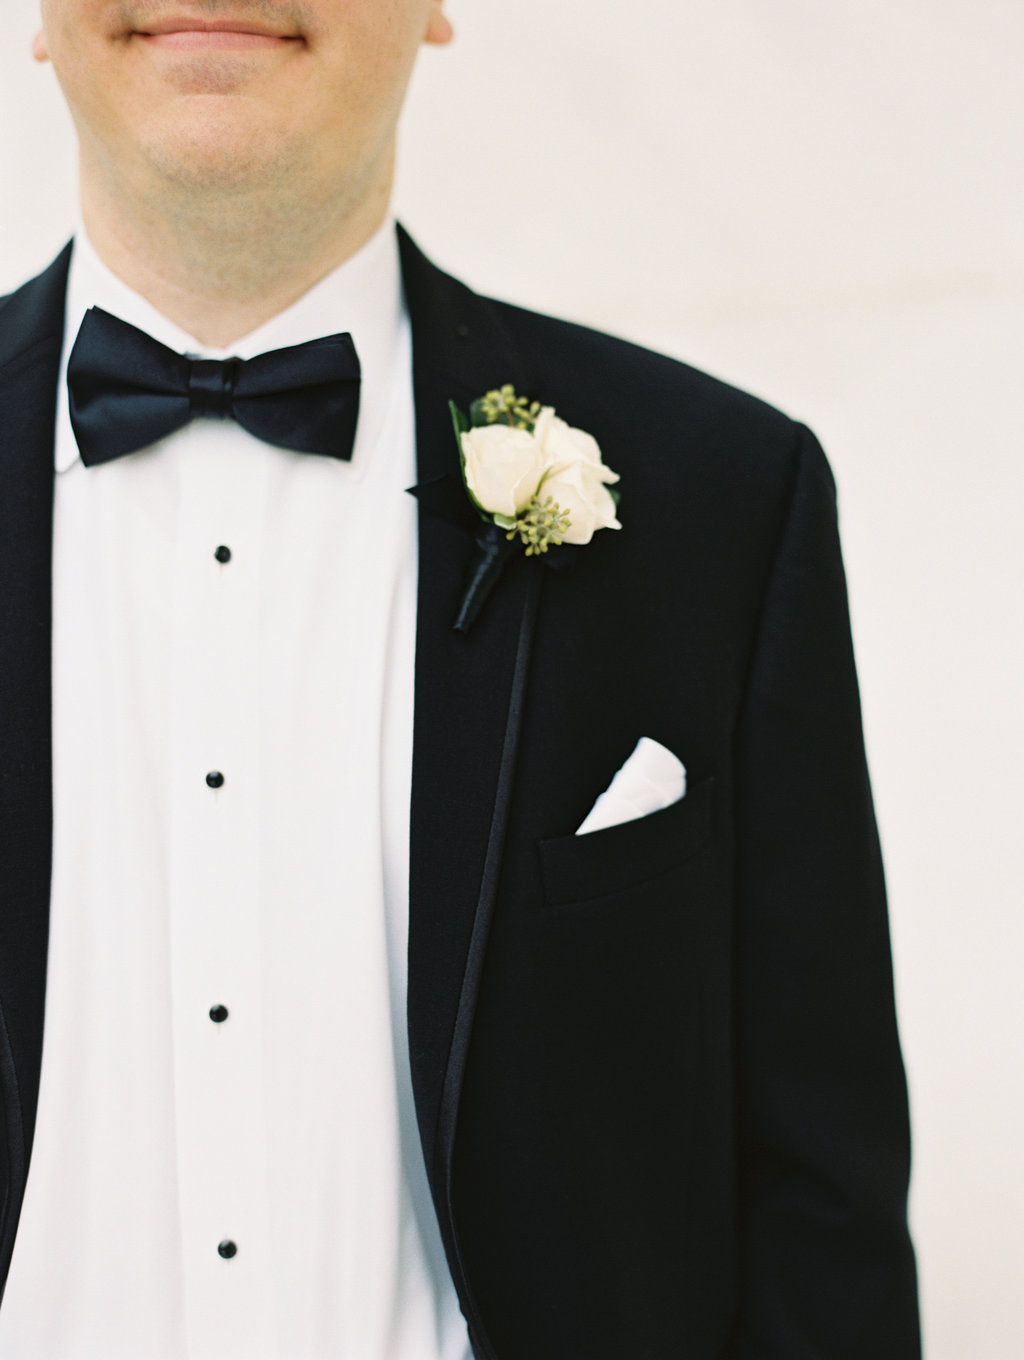 black tie wedding boutonnieres - photo by Abby Jiu Photography https://ruffledblog.com/modern-metallics-wedding-in-downtown-washington-dc